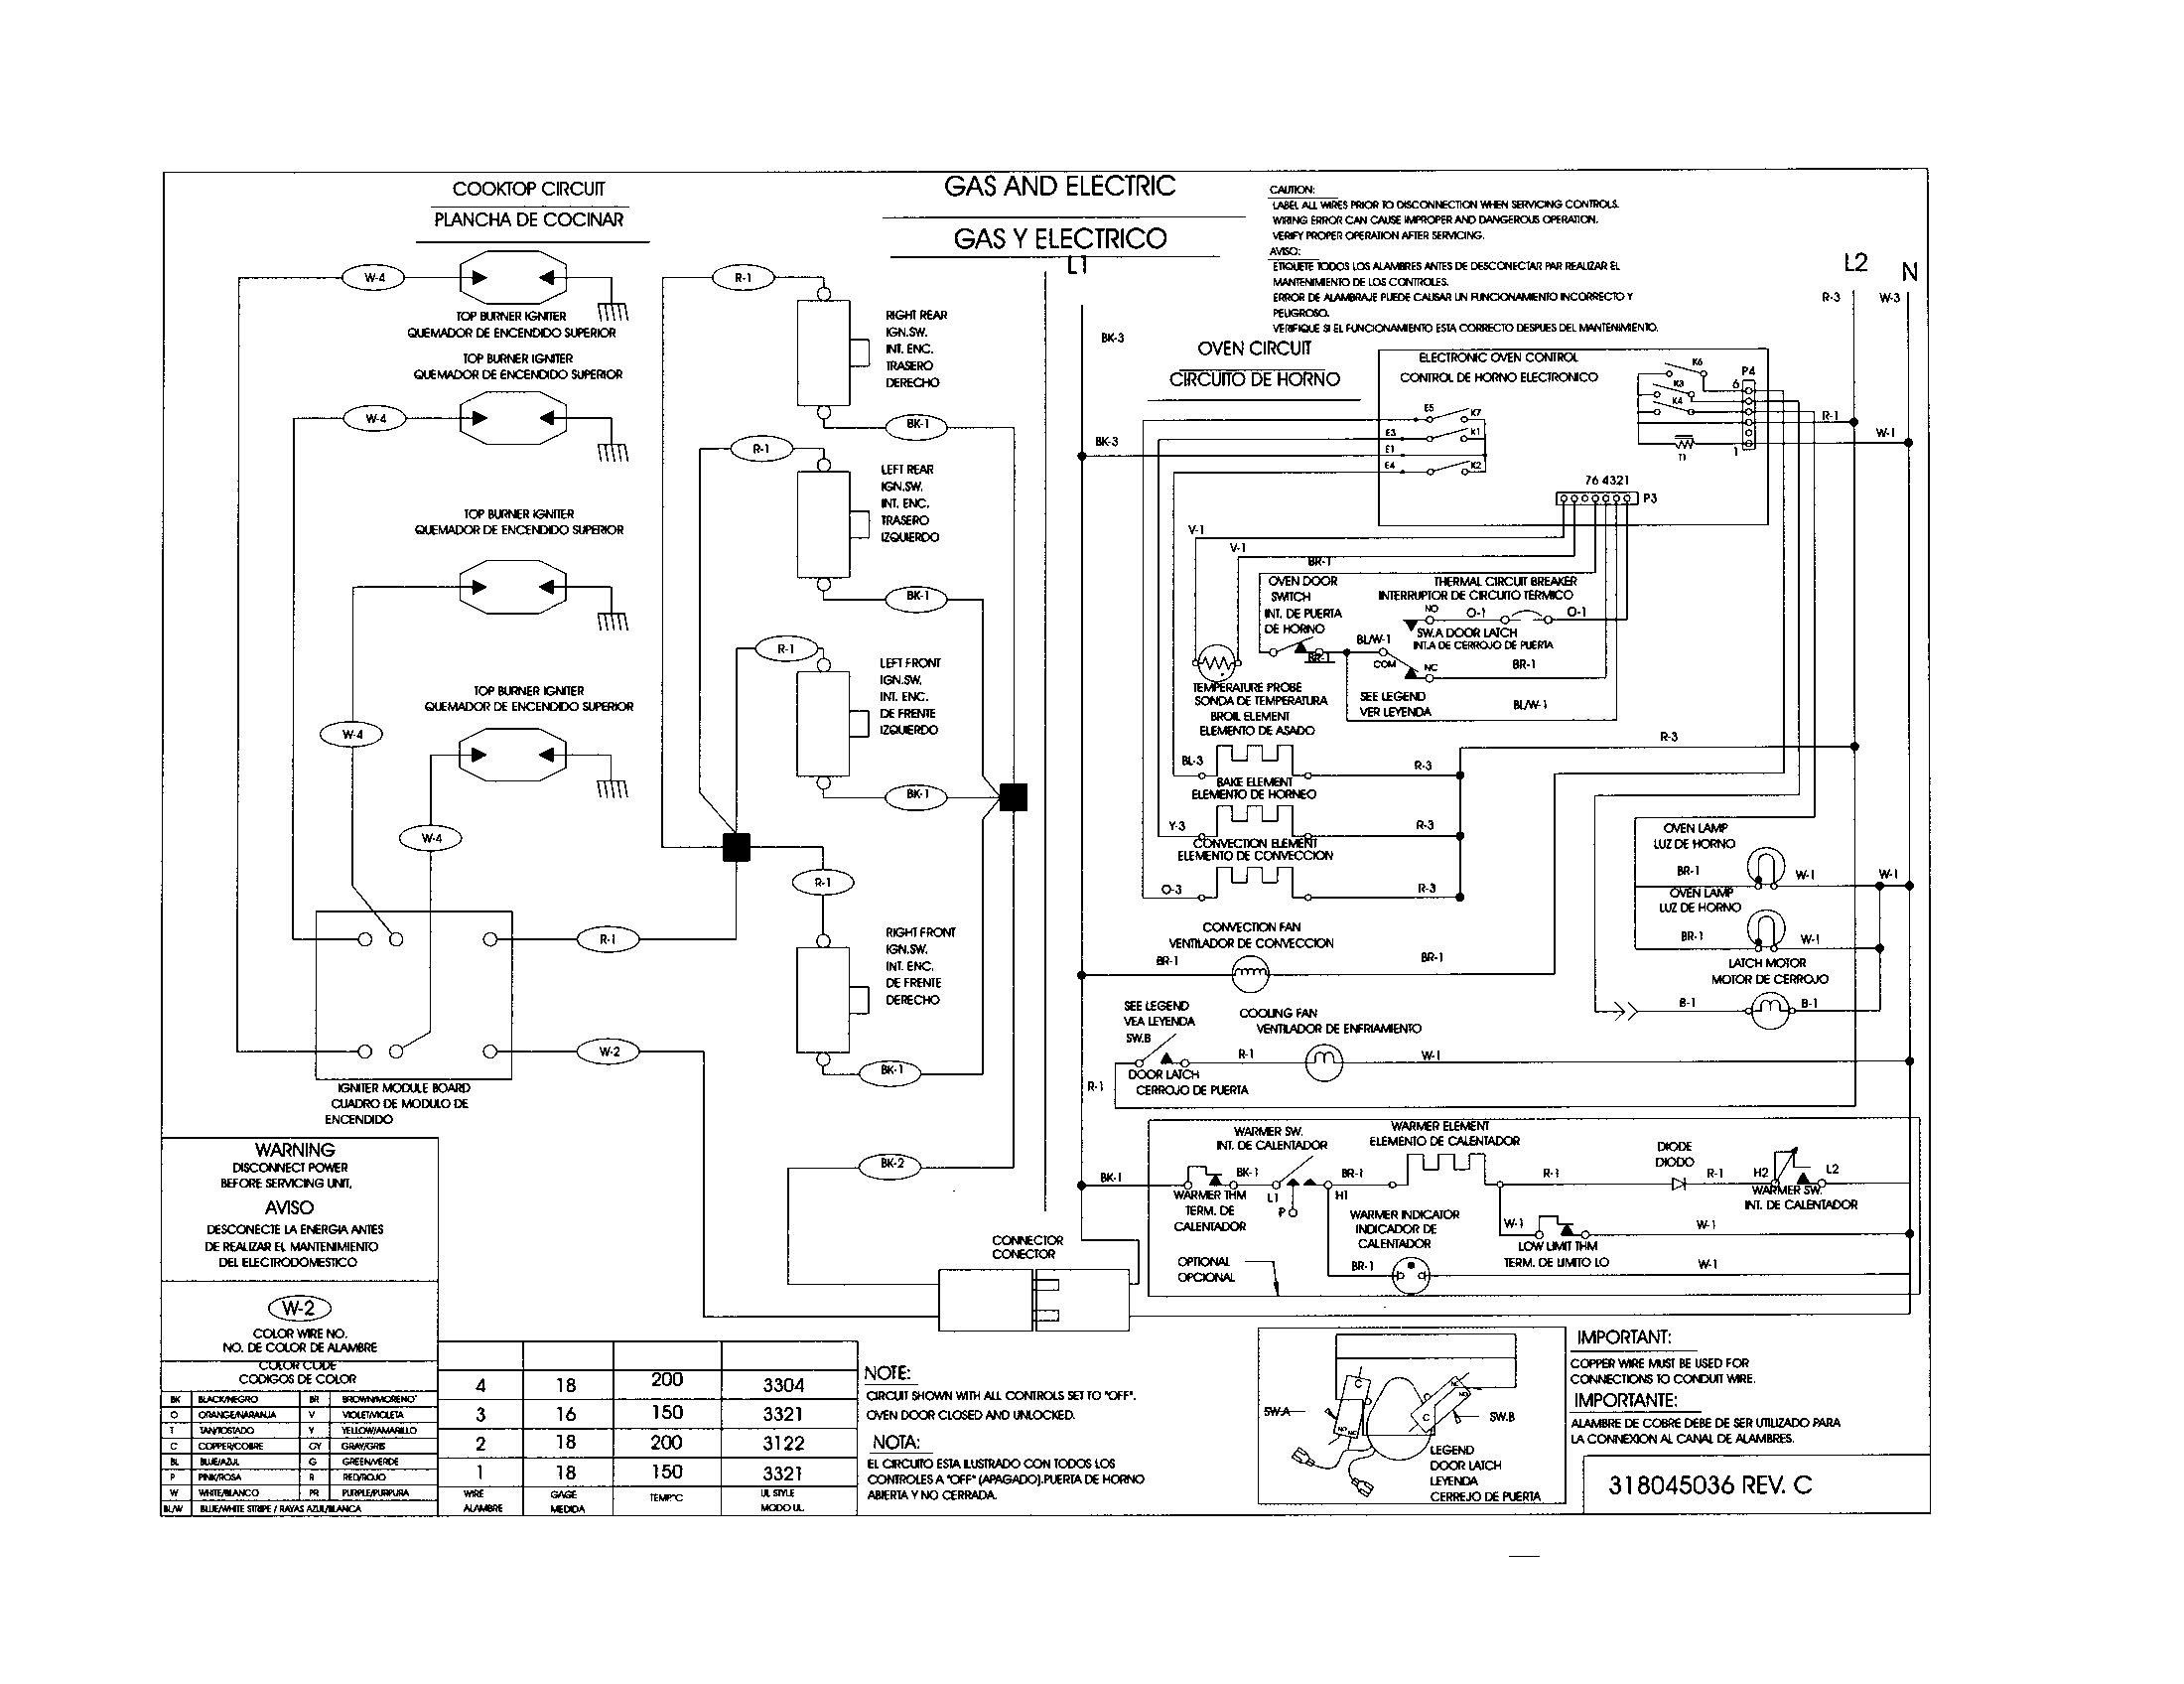 True T 23f Wiring Diagram -Old Car Wiring Diagrams For Chevy | Begeboy Wiring  Diagram Source | True Freezer Wiring Diagram |  | Bege Wiring Diagram